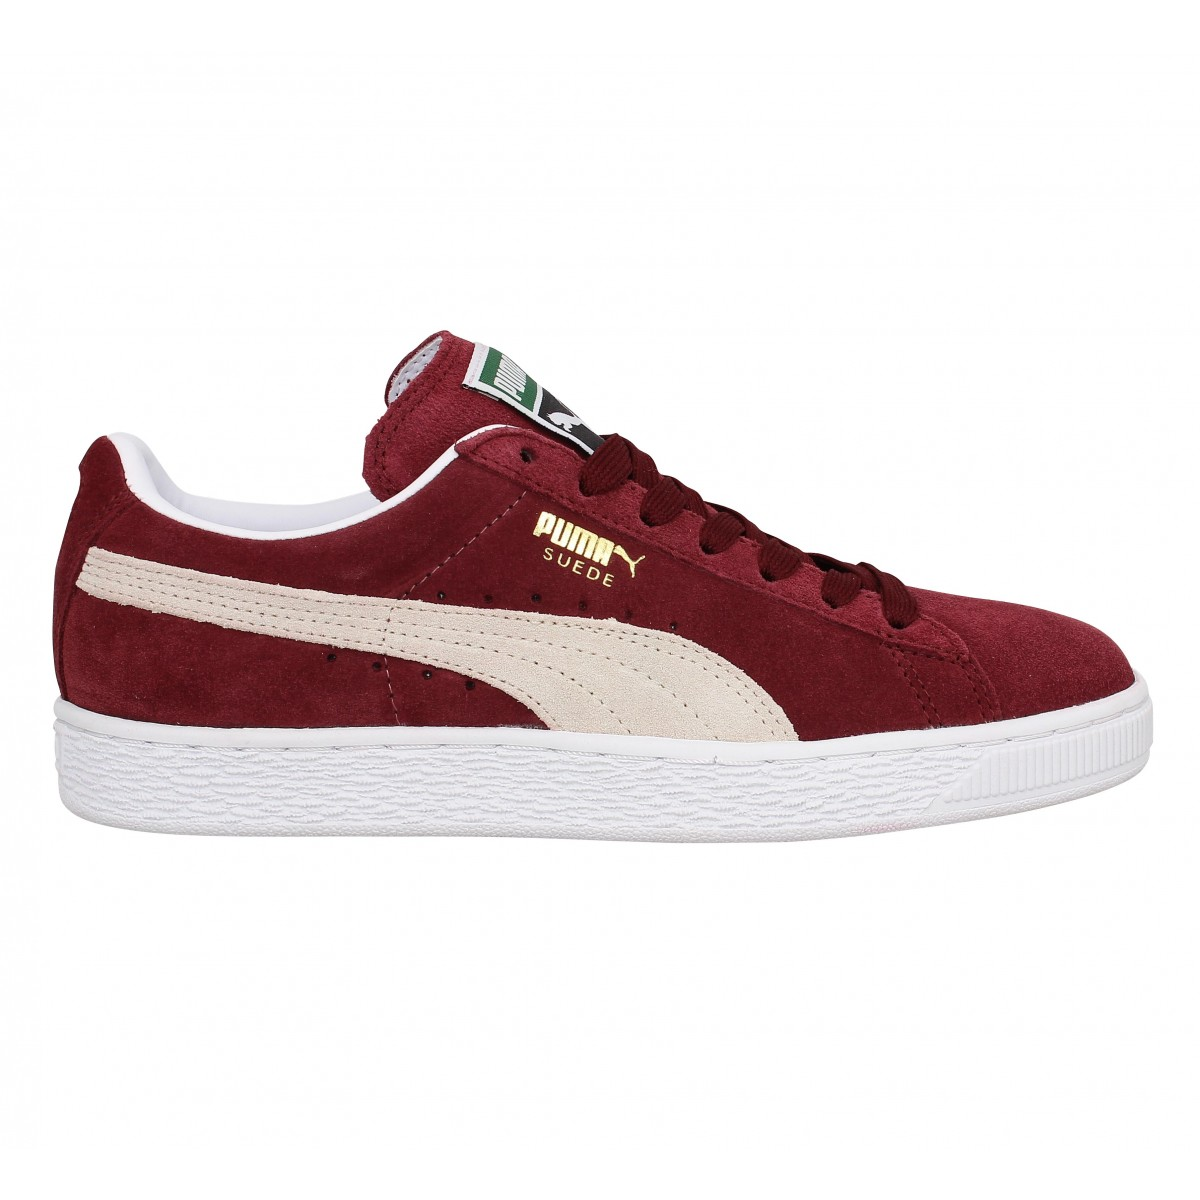 ebe71036a9506 Puma suede classic velours femme cameo brown femme   Fanny chaussures